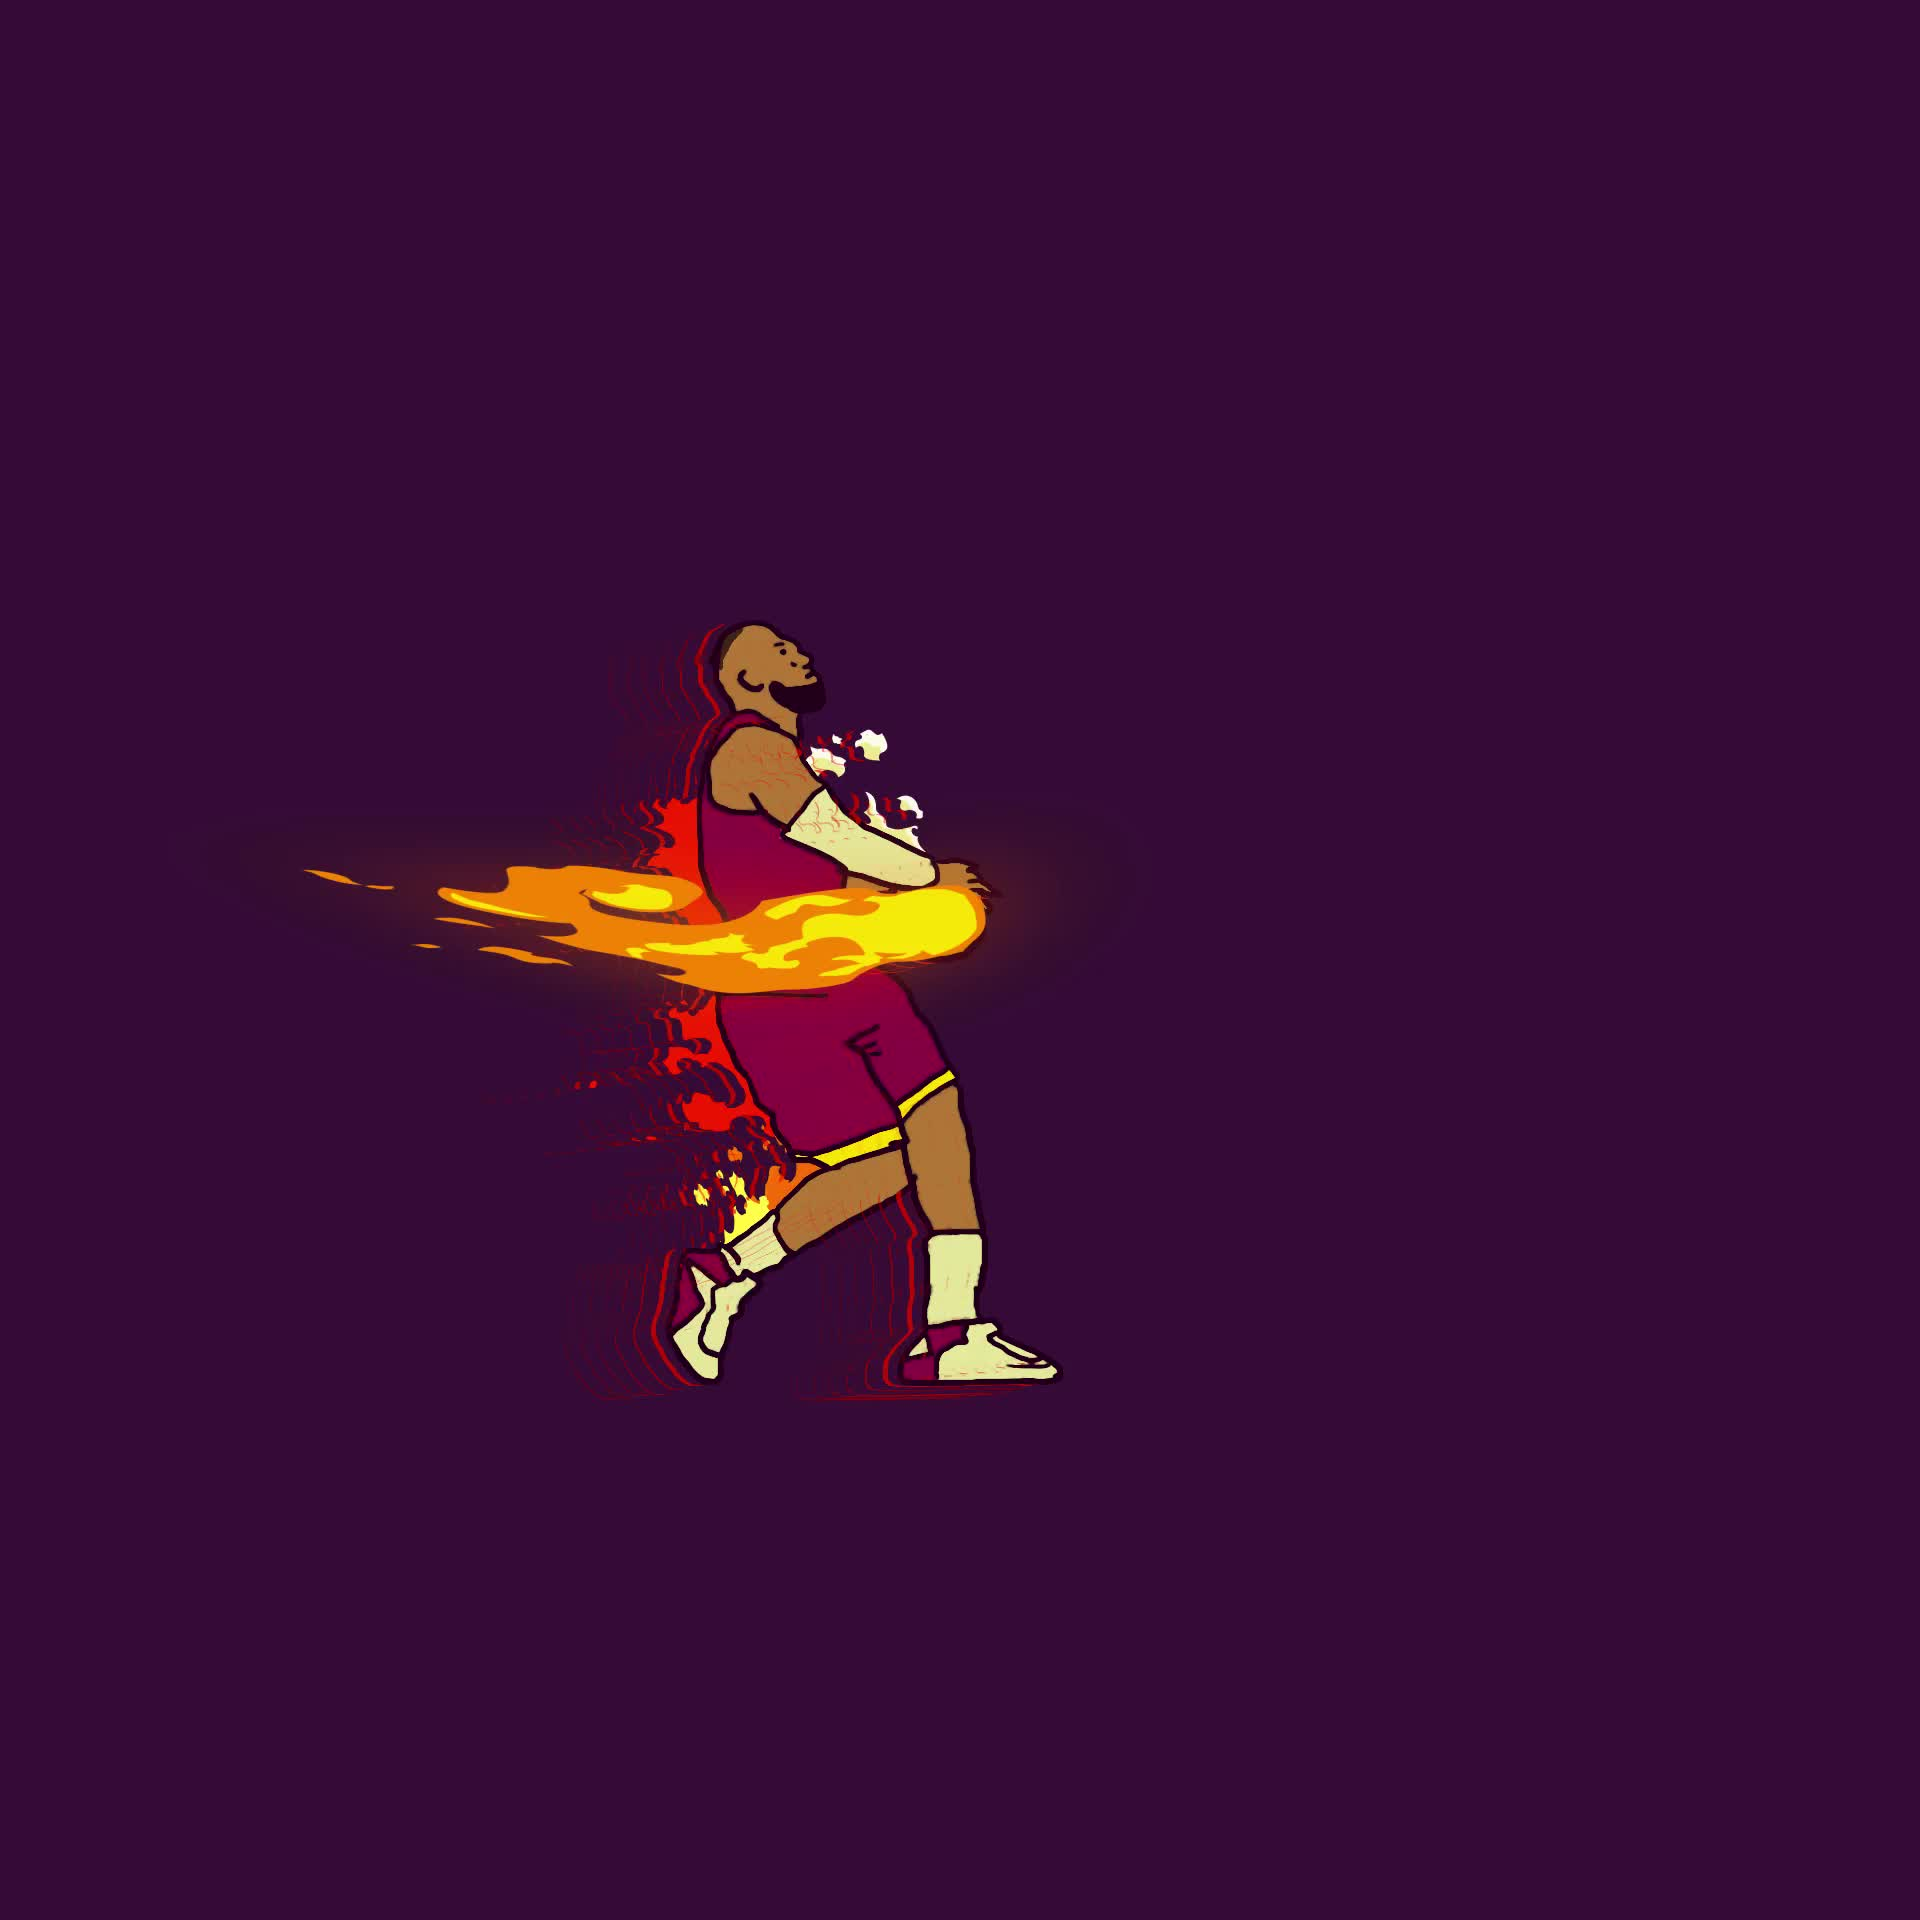 animation, cavaliers, fire, jake mathew, lebron james, lit, slam dunk, Lebron James On Fire GIFs